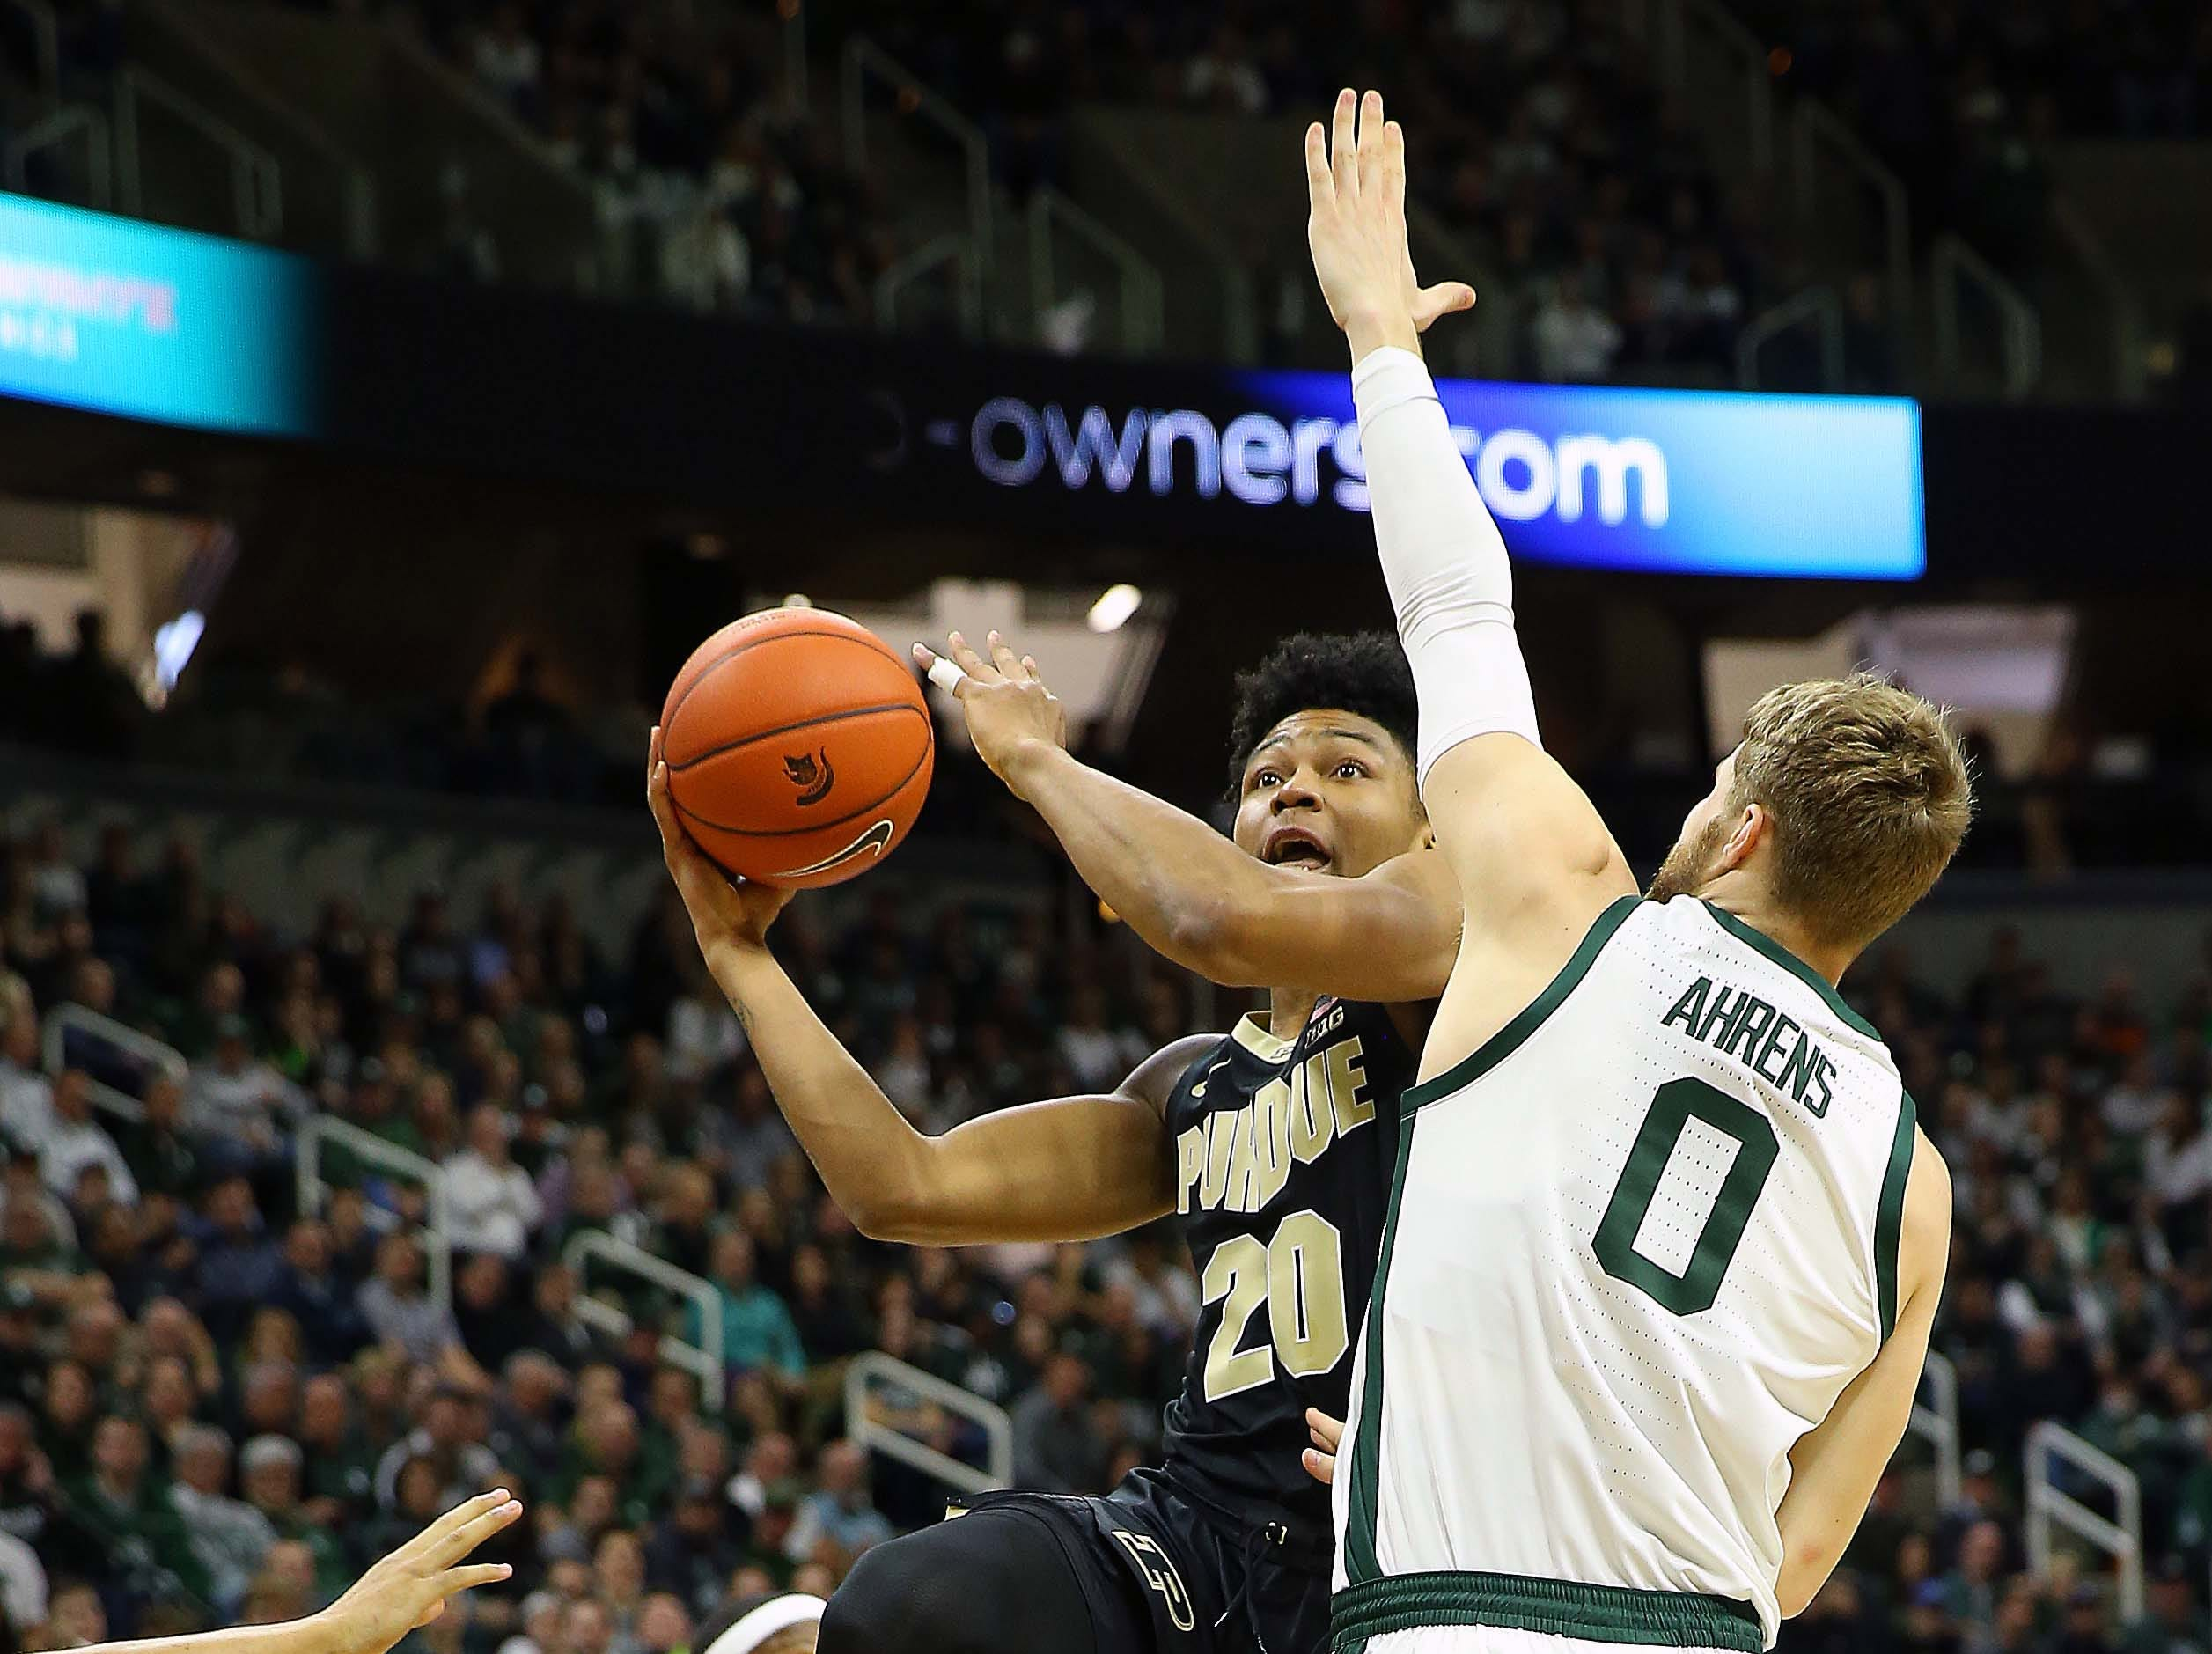 Jan 8, 2019; East Lansing, MI, USA; Purdue Boilermakers guard Nojel Eastern (20) drive the lane against Michigan State Spartans forward Kyle Ahrens (0) during the first half of a game at the Breslin Center. Mandatory Credit: Mike Carter-USA TODAY Sports